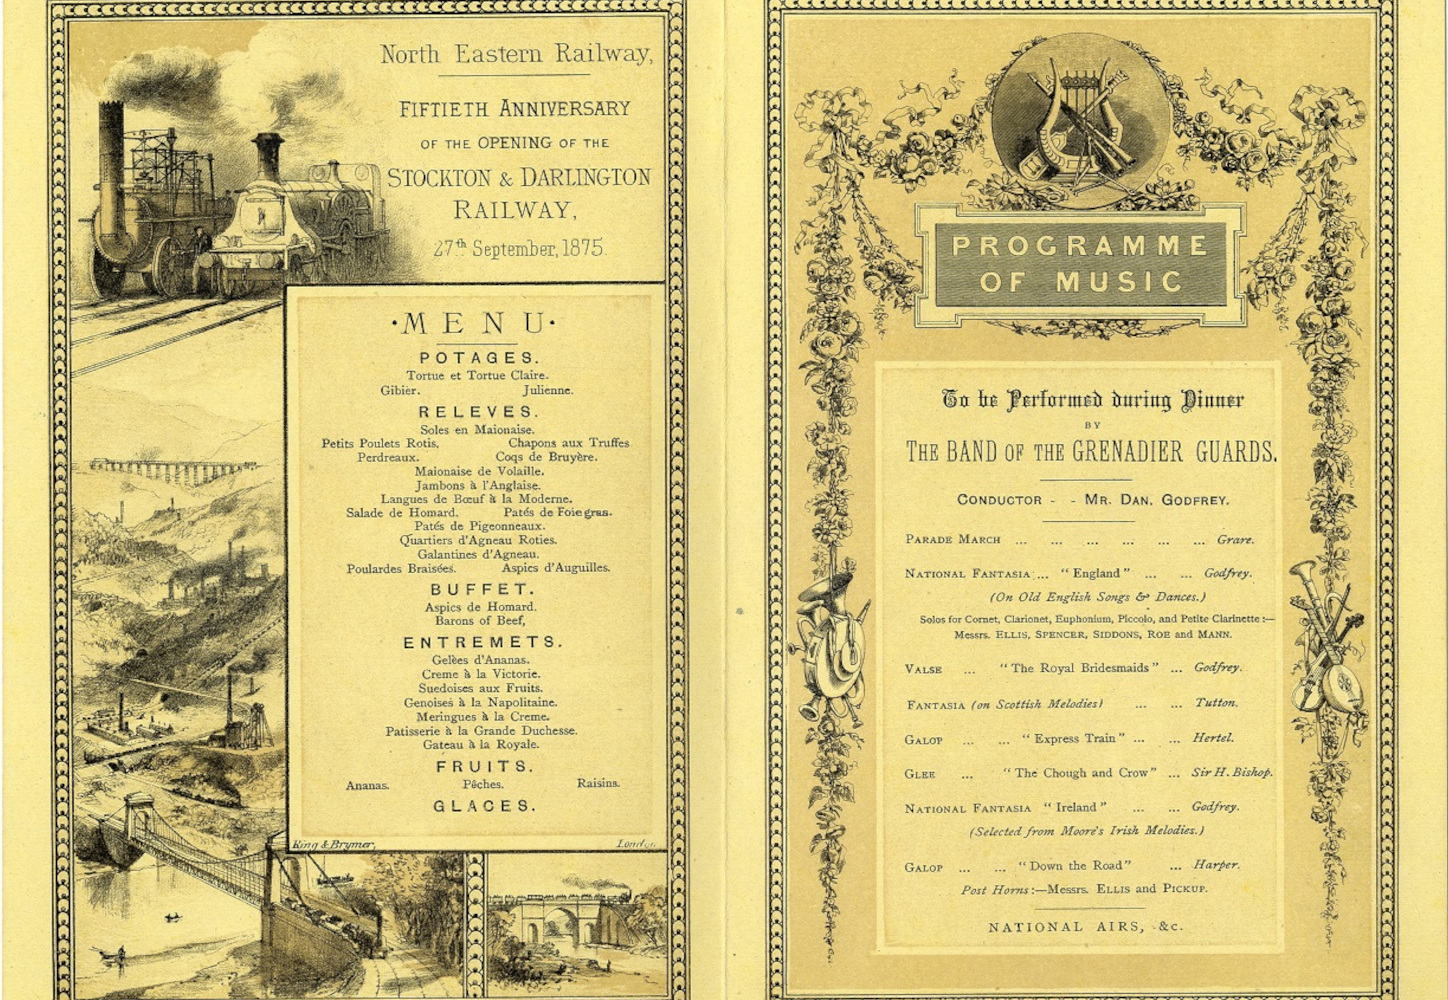 Heritage image of menu and programme for the fiftieth anniversary of the opening of the Stockton and Darlington railway in 1875